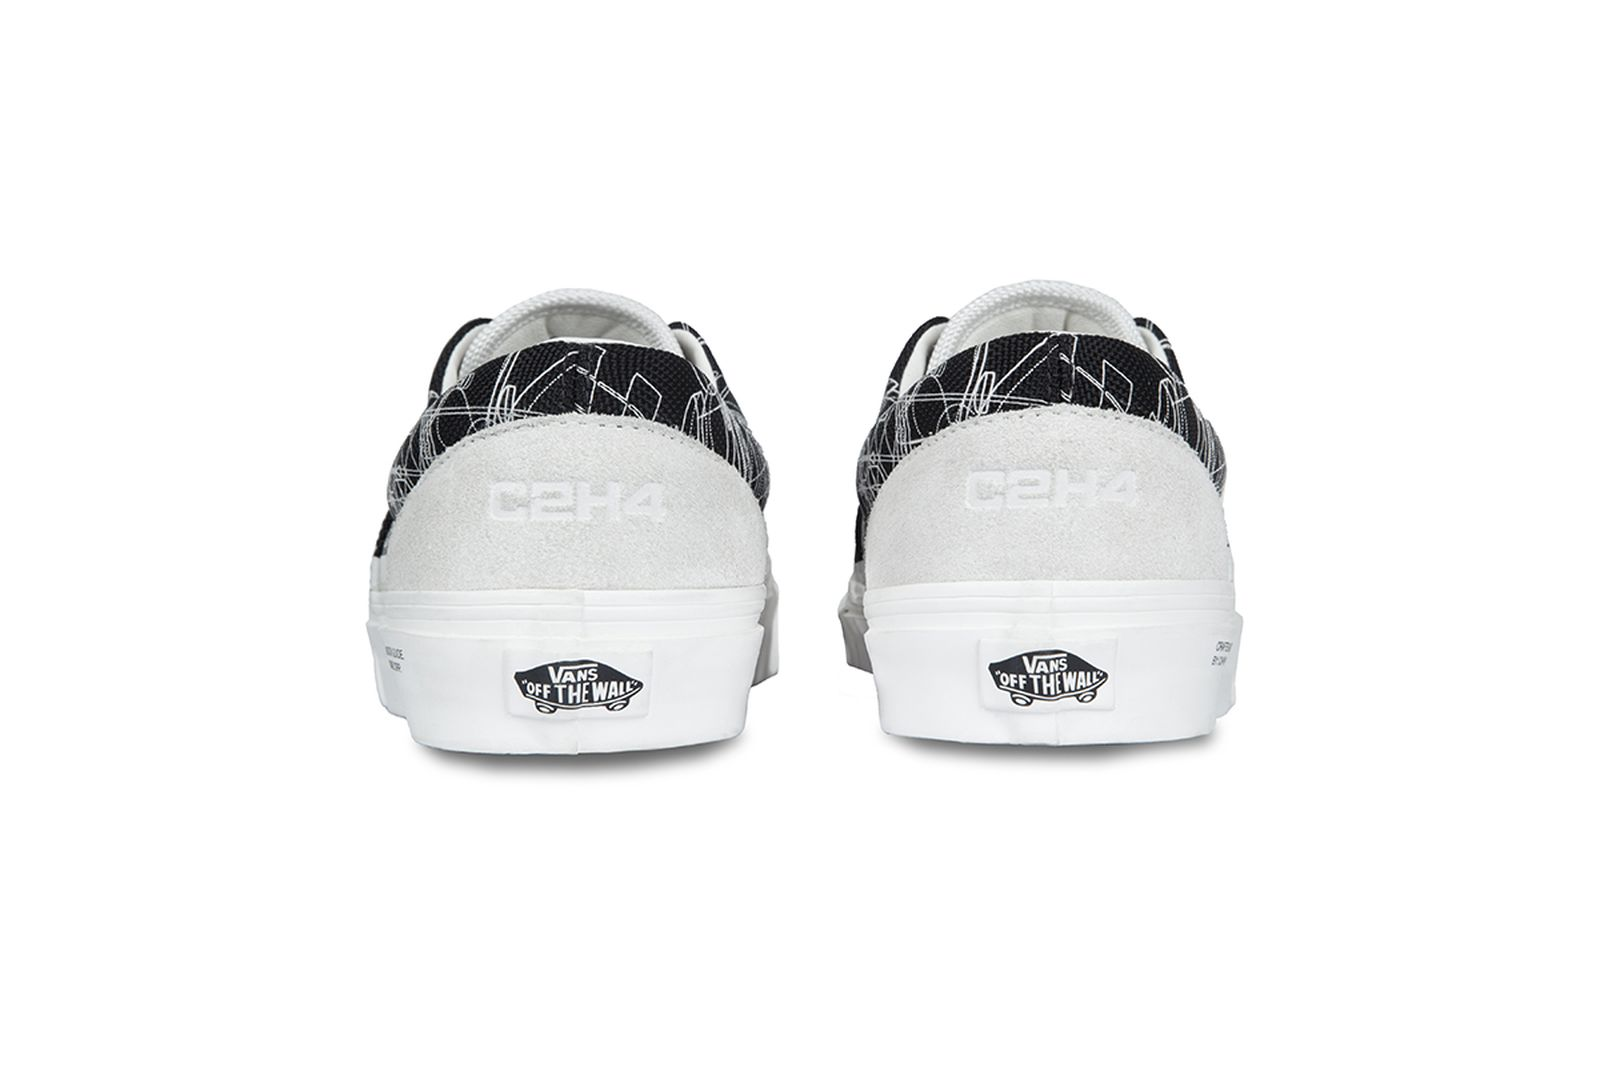 c2h4-vans-the-imagination-of-future-2-release-date-price-1-a-06